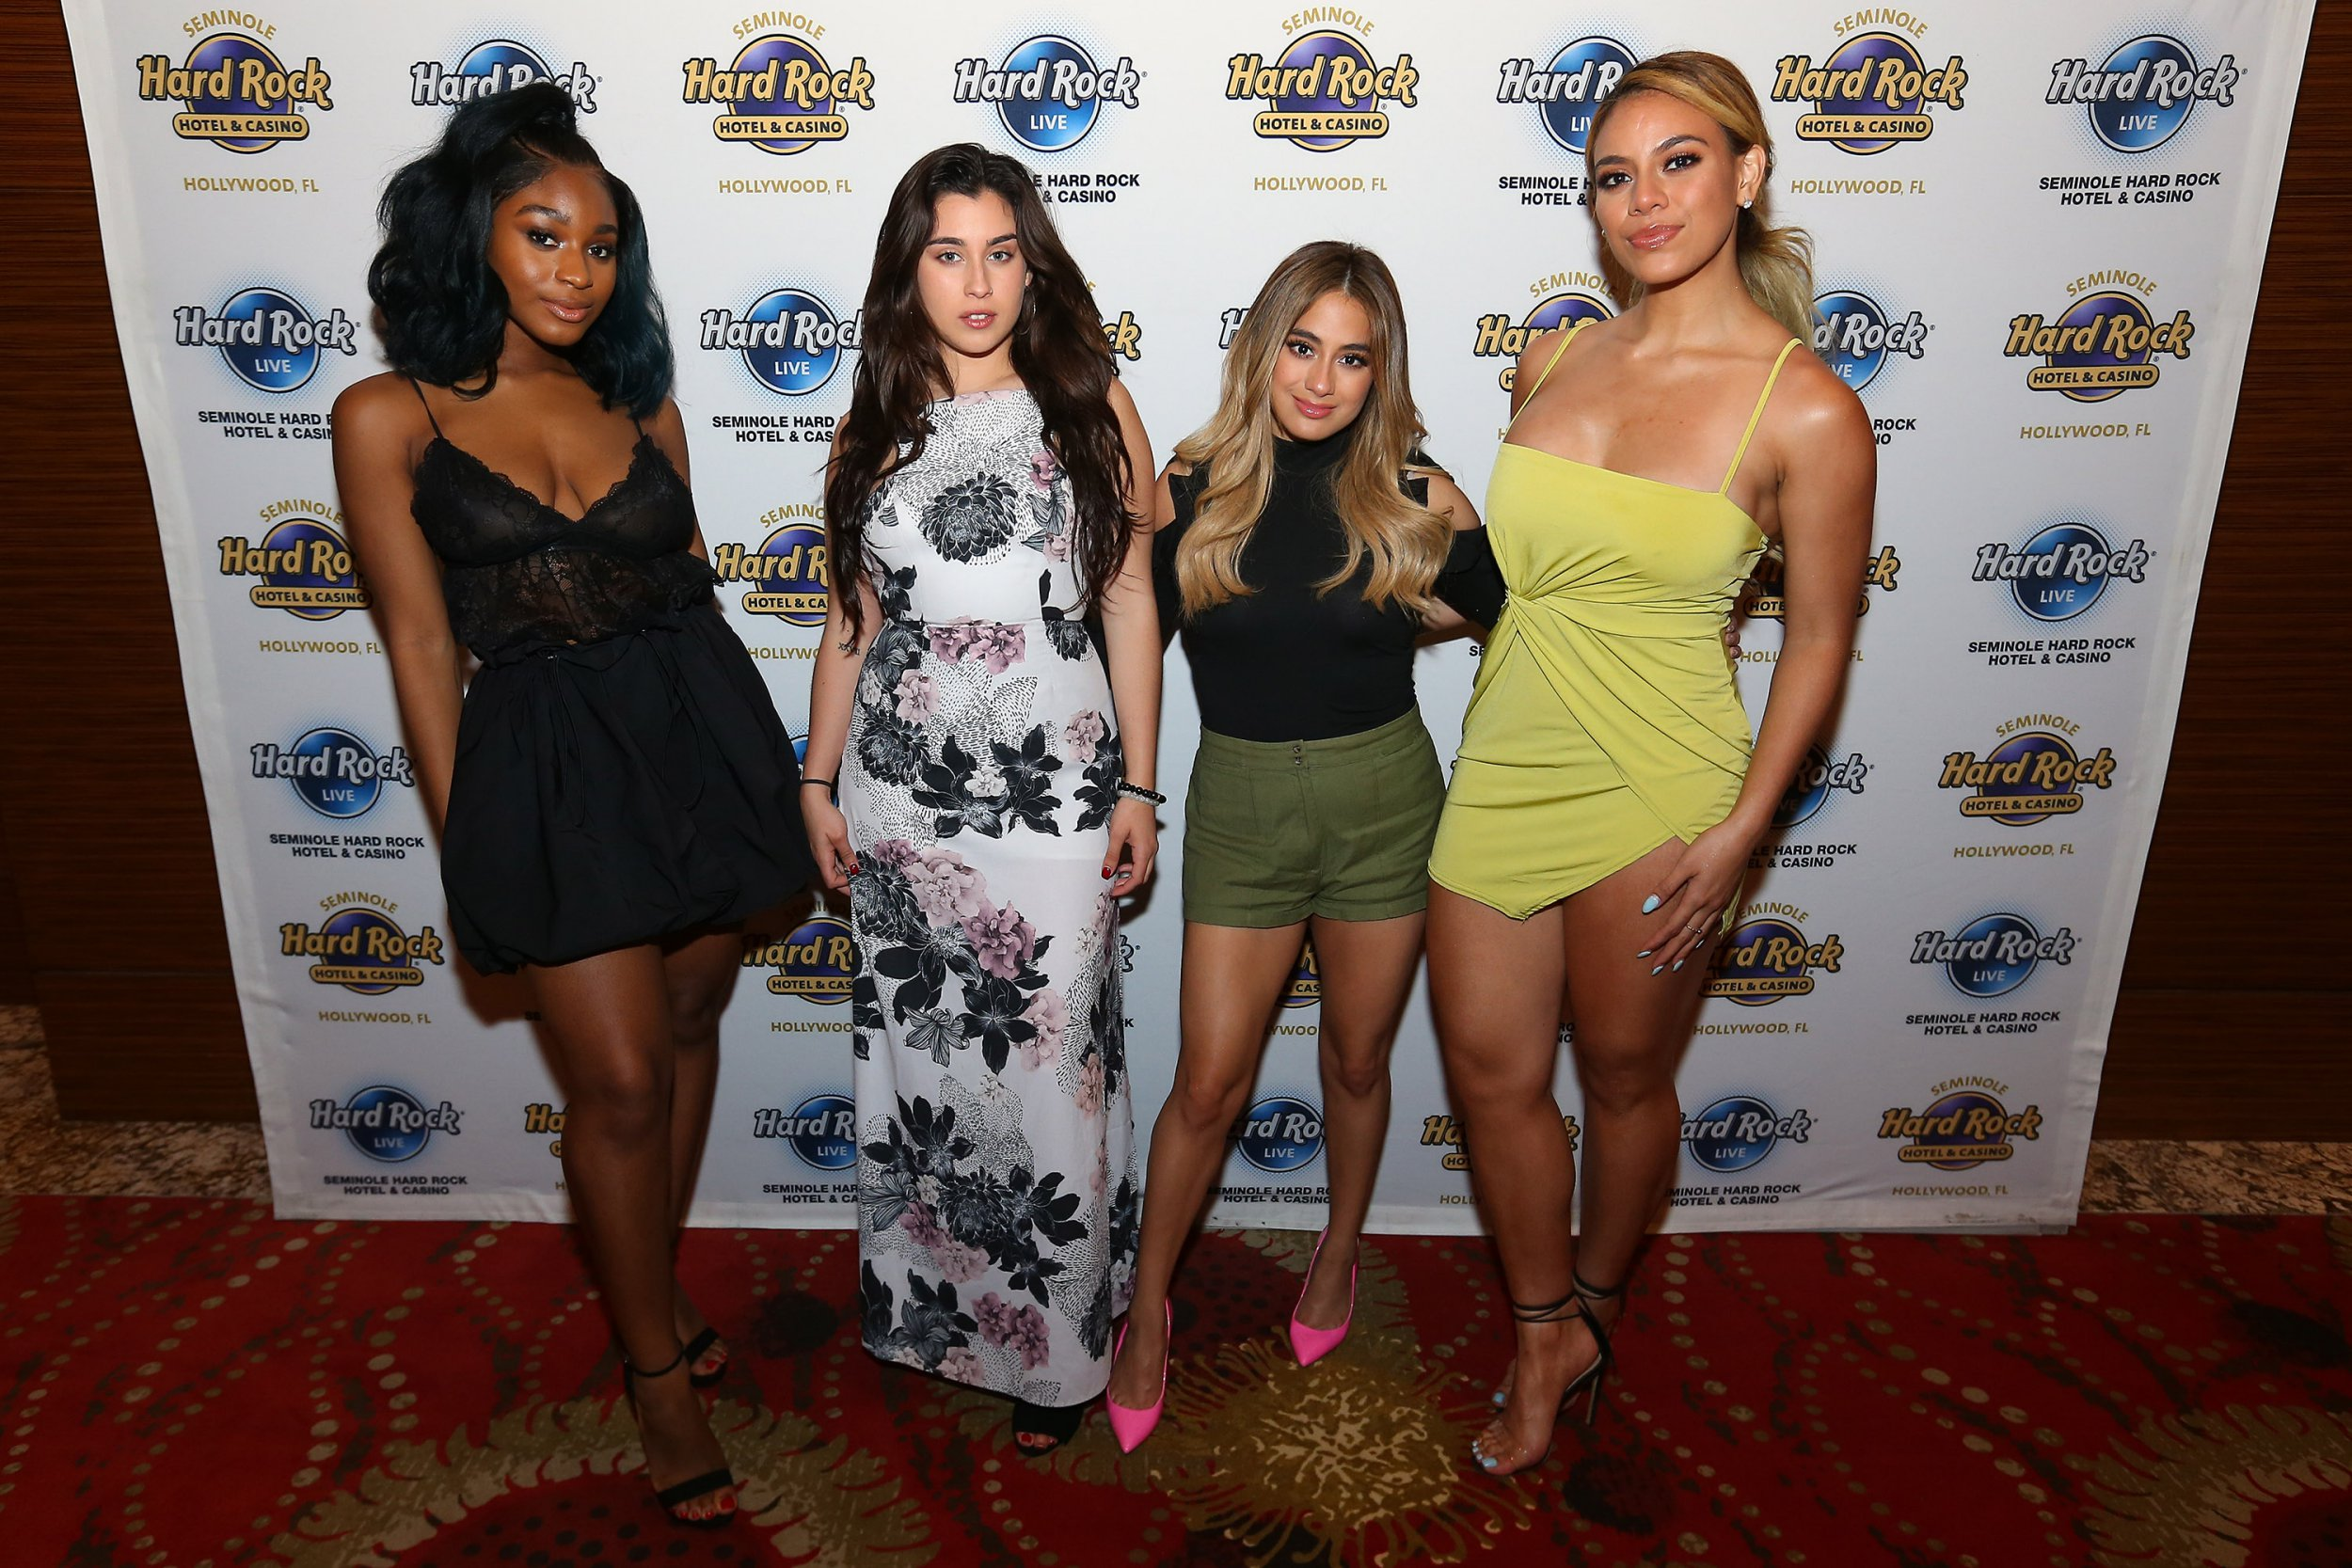 Fifth Harmony performed for the last time in the United States on Friday night. Ally Brooke, Dinah Jane, Lauren Jauregui and Normani Kordei were all smiles when they took their final bow as Fifth Harmony at Seminole Hard Rock Hotel & Casino in Hollywood, Fla. 11 May 2018 Pictured: Ally Brooke, Dinah Jane, Lauren Jauregui and Normani Kordei. Photo credit: Ralph Notaro / MEGA TheMegaAgency.com +1 888 505 6342